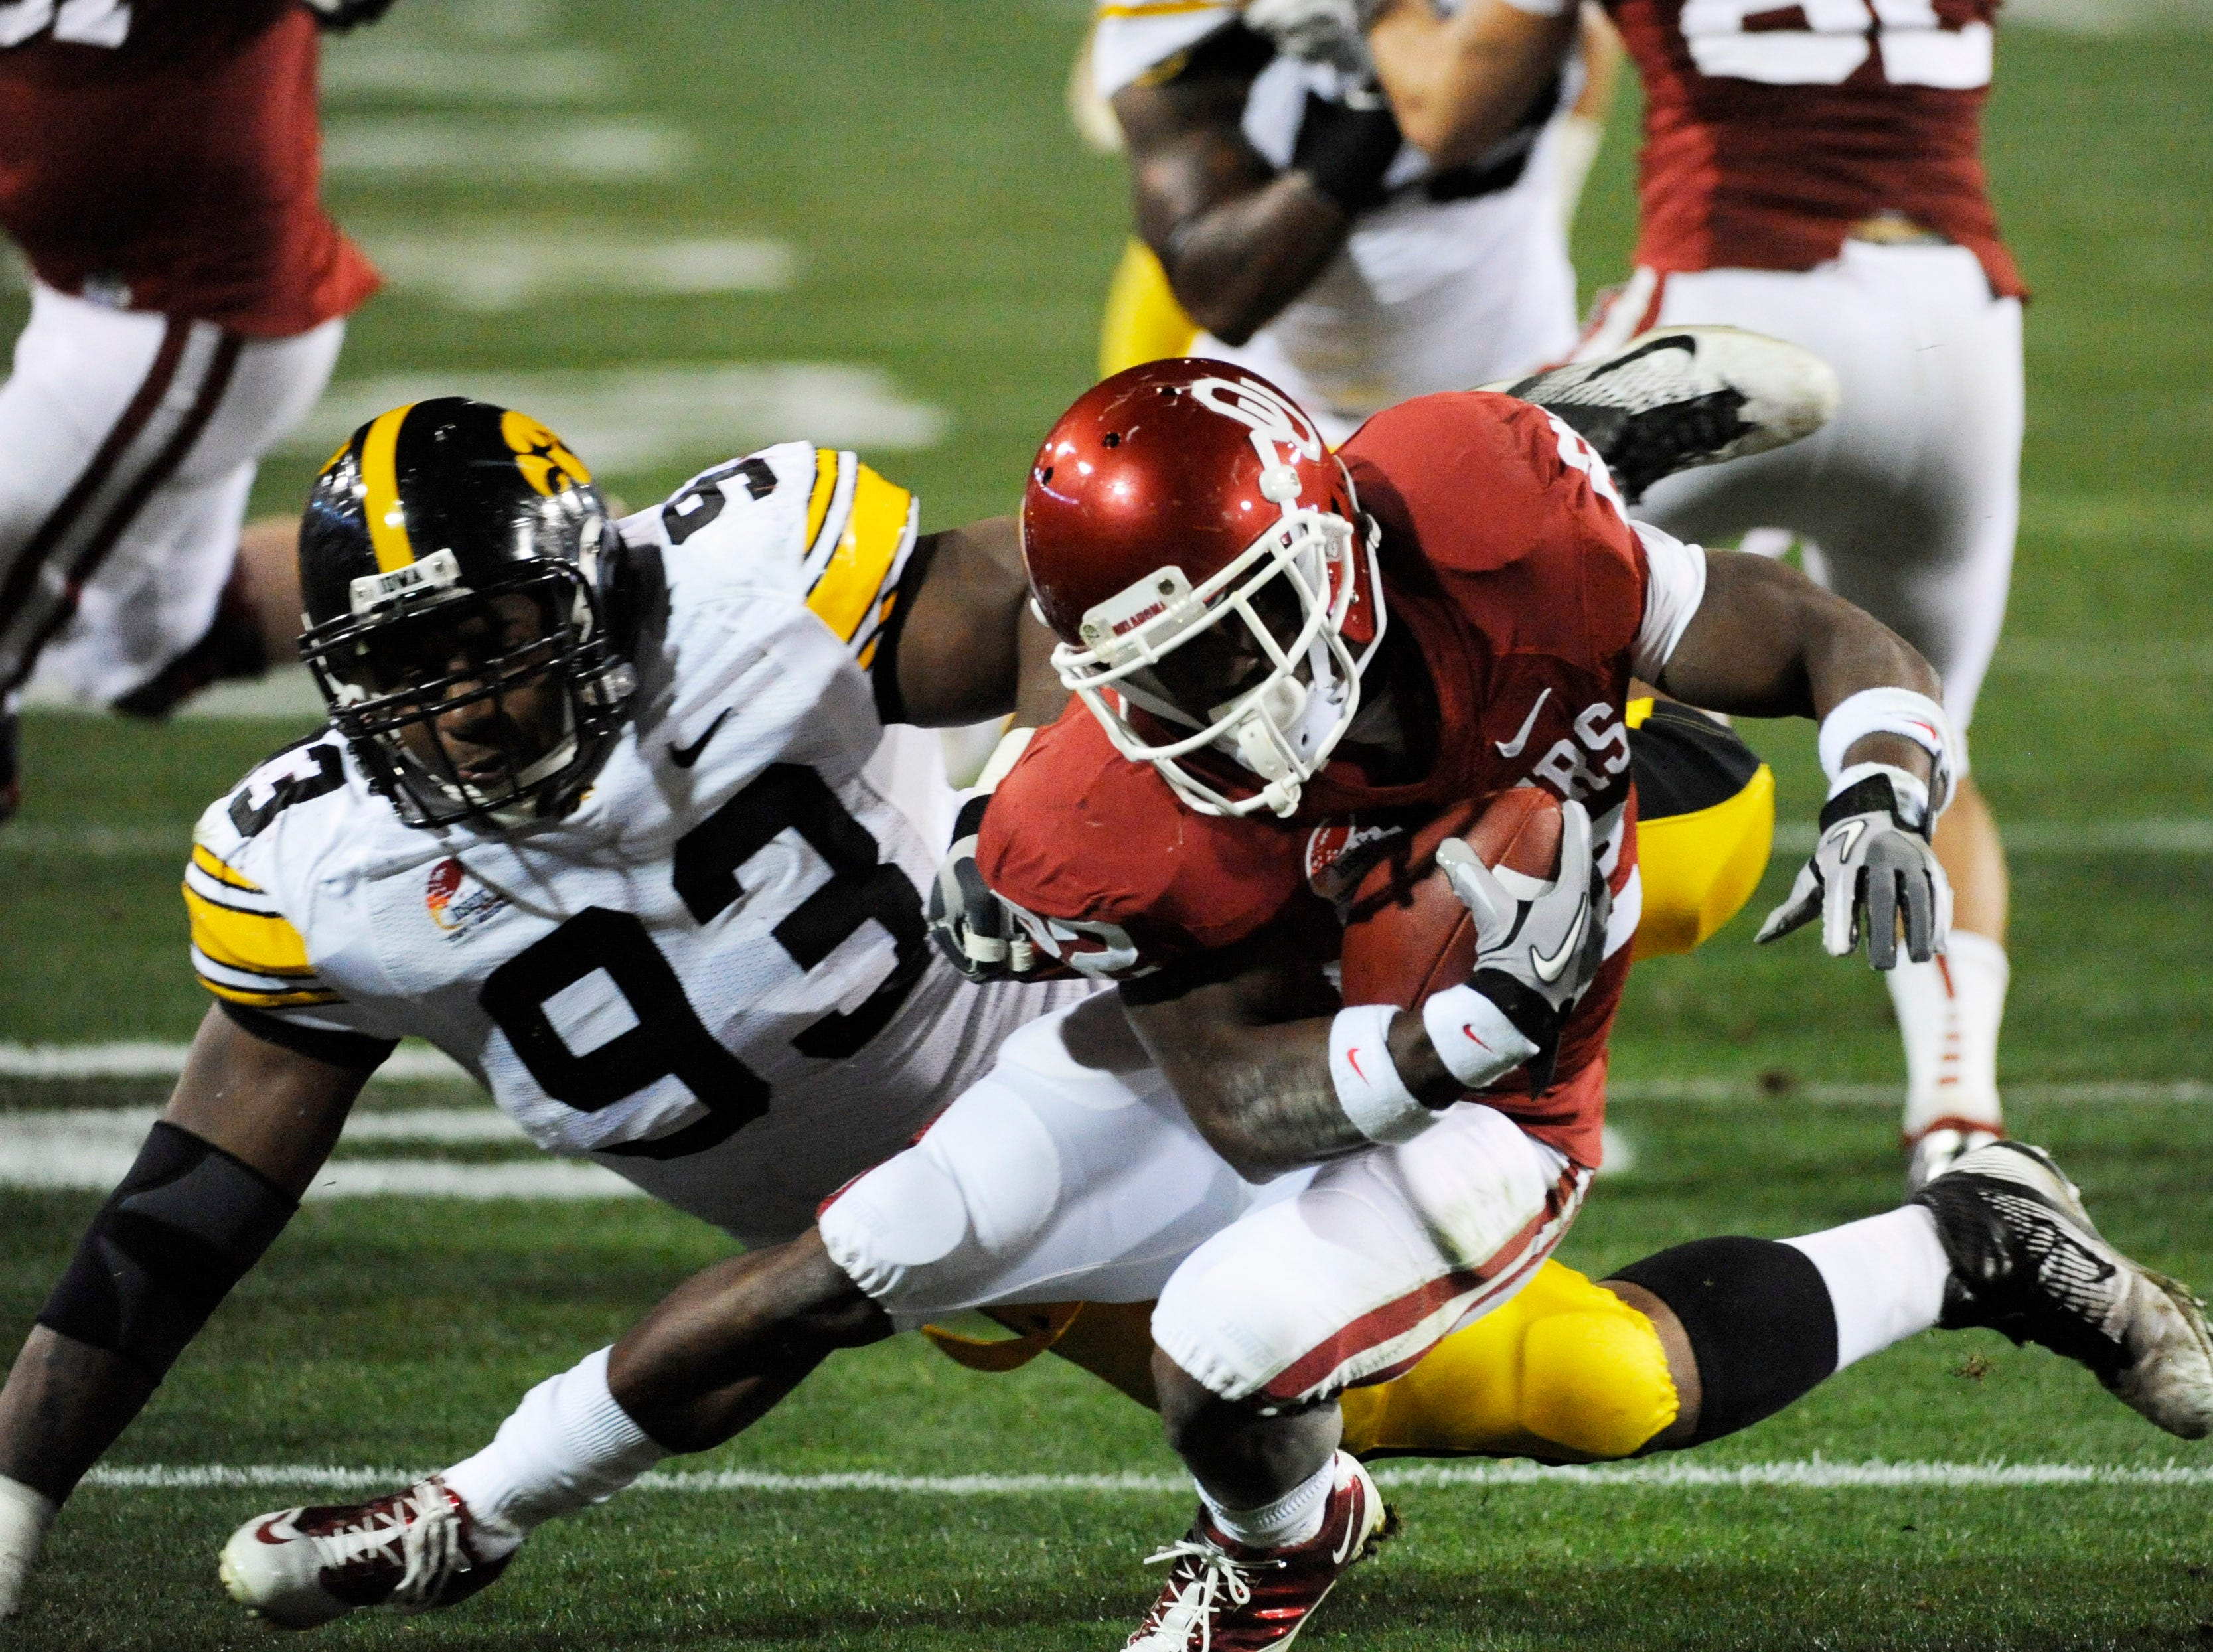 Dec 30, 2011; Tempe, AZ, USA; Iowa Hawkeyes defensive lineman Mike Daniels (93) tackles Oklahoma Sooners running back Roy Finch (22) during the first half of the 2011 Insight Bowl at the Sun Devil Stadium. Mandatory Credit: Richard Mackson-USA TODAY Sports